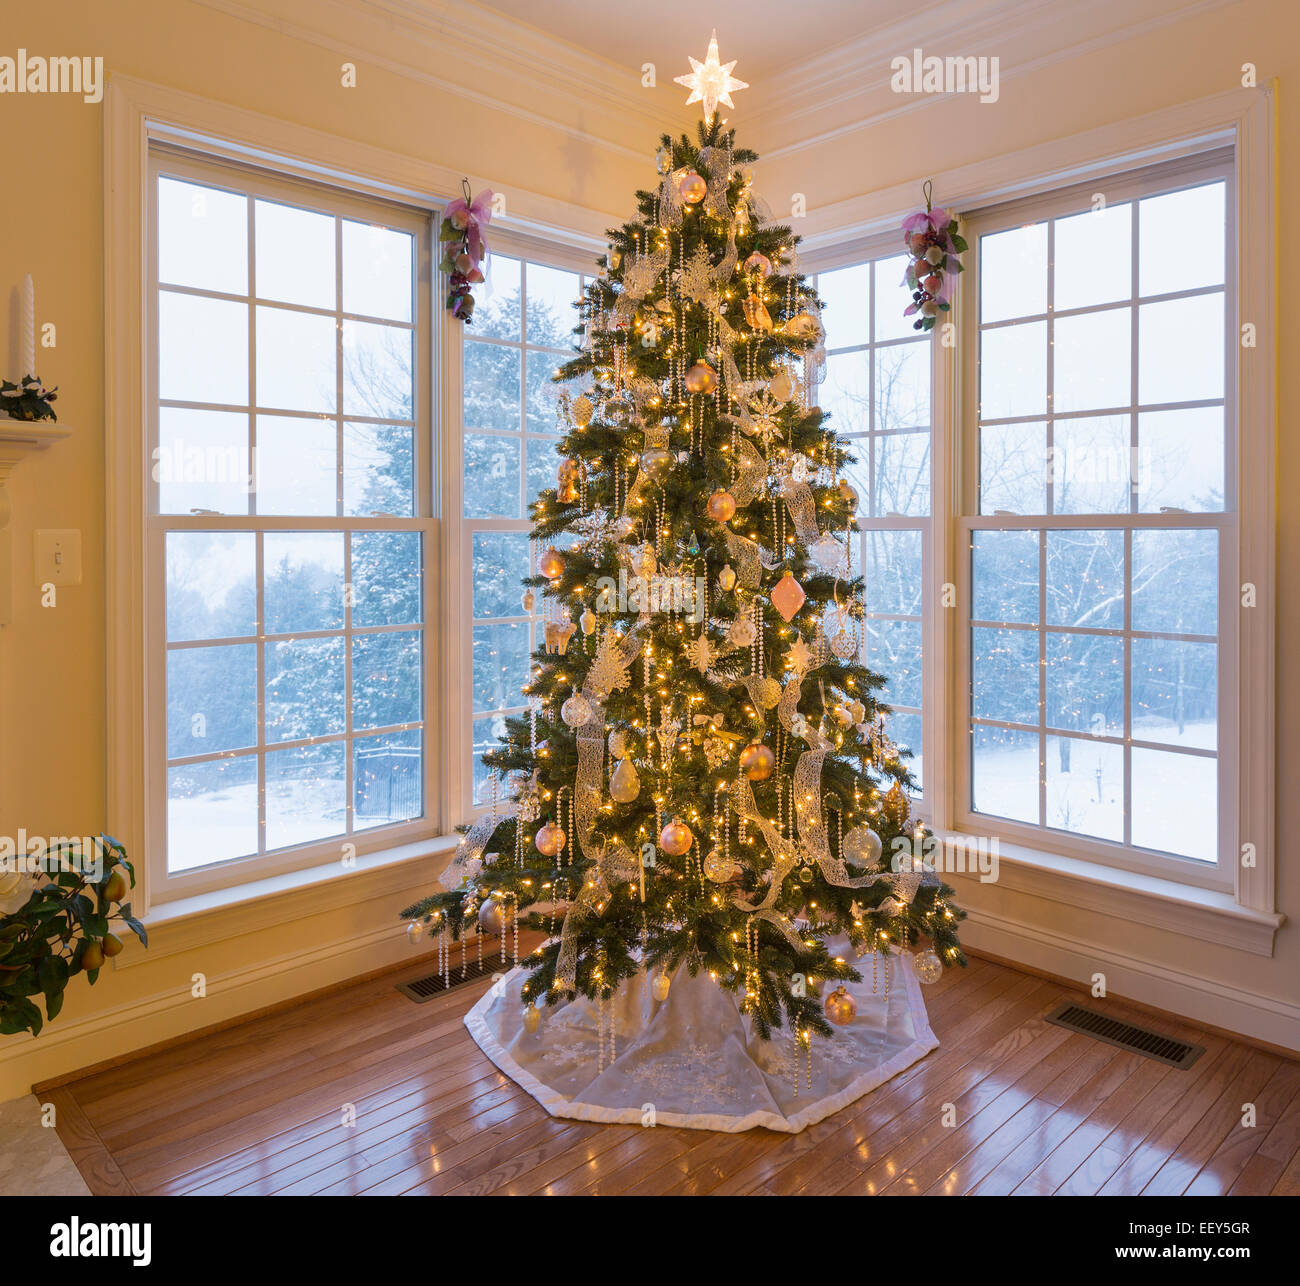 too big christmas tree house stock photos too big christmas tree rh alamy com christmas tree in white house 2018 christmas tree in white house obama